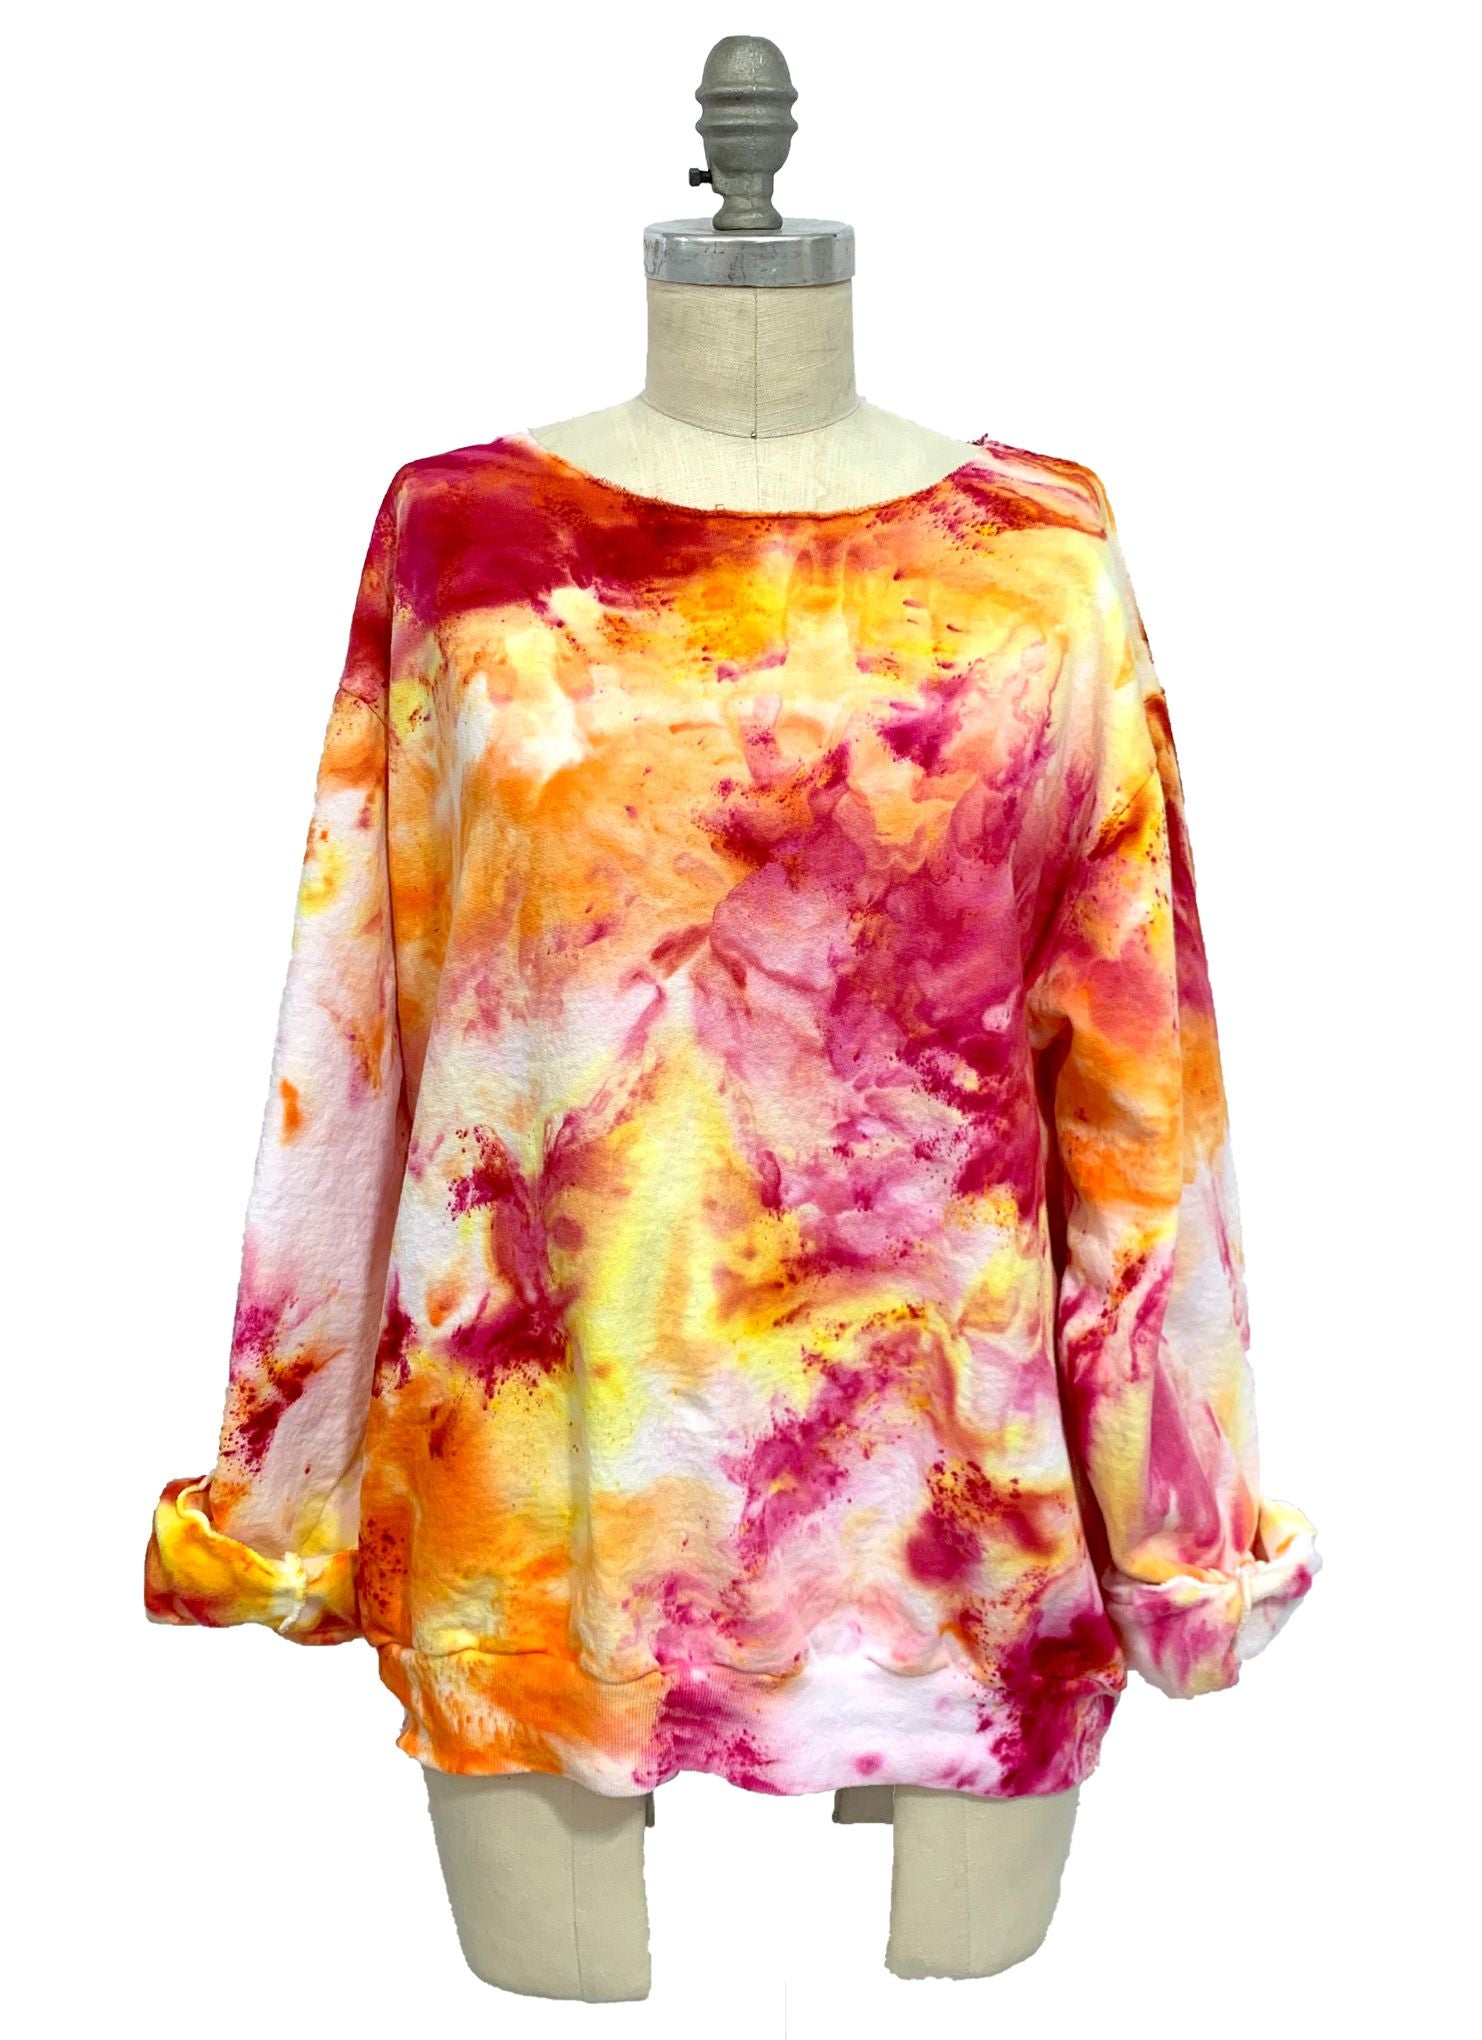 Hand Dyed Perfect Sweatshirt in